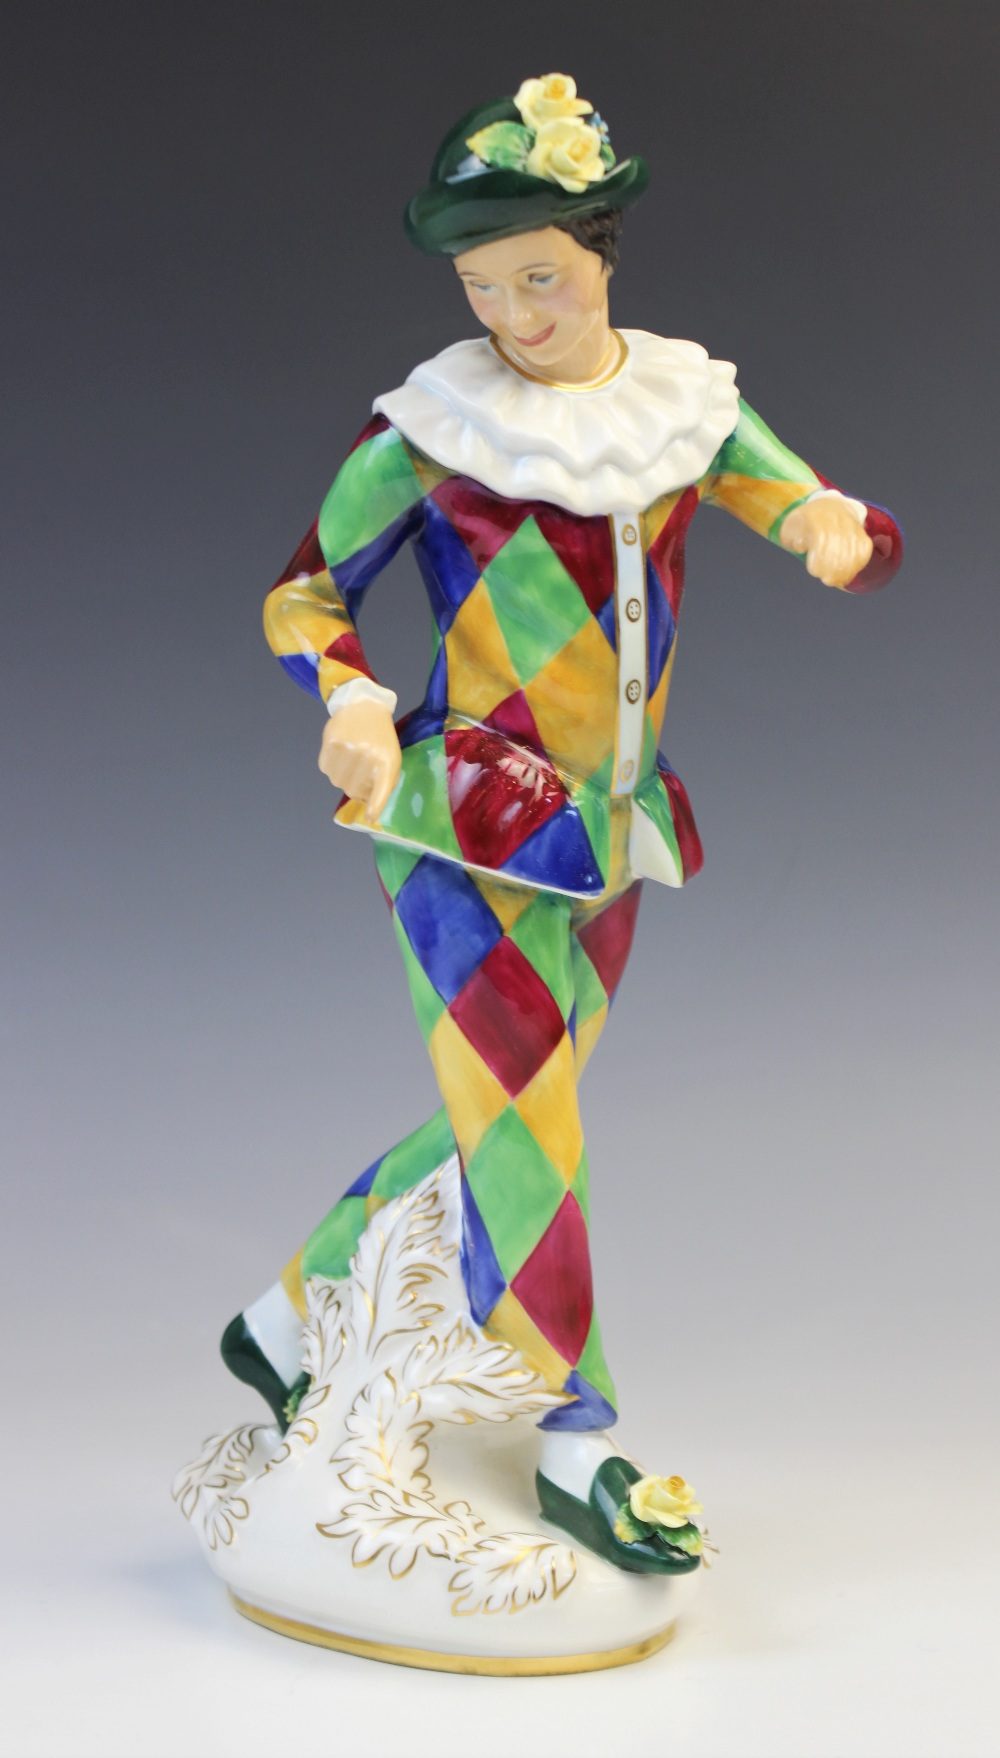 A Royal Doulton HN2737 'Harlequin' figure modelled by Douglas Tootle, printed maker's mark and